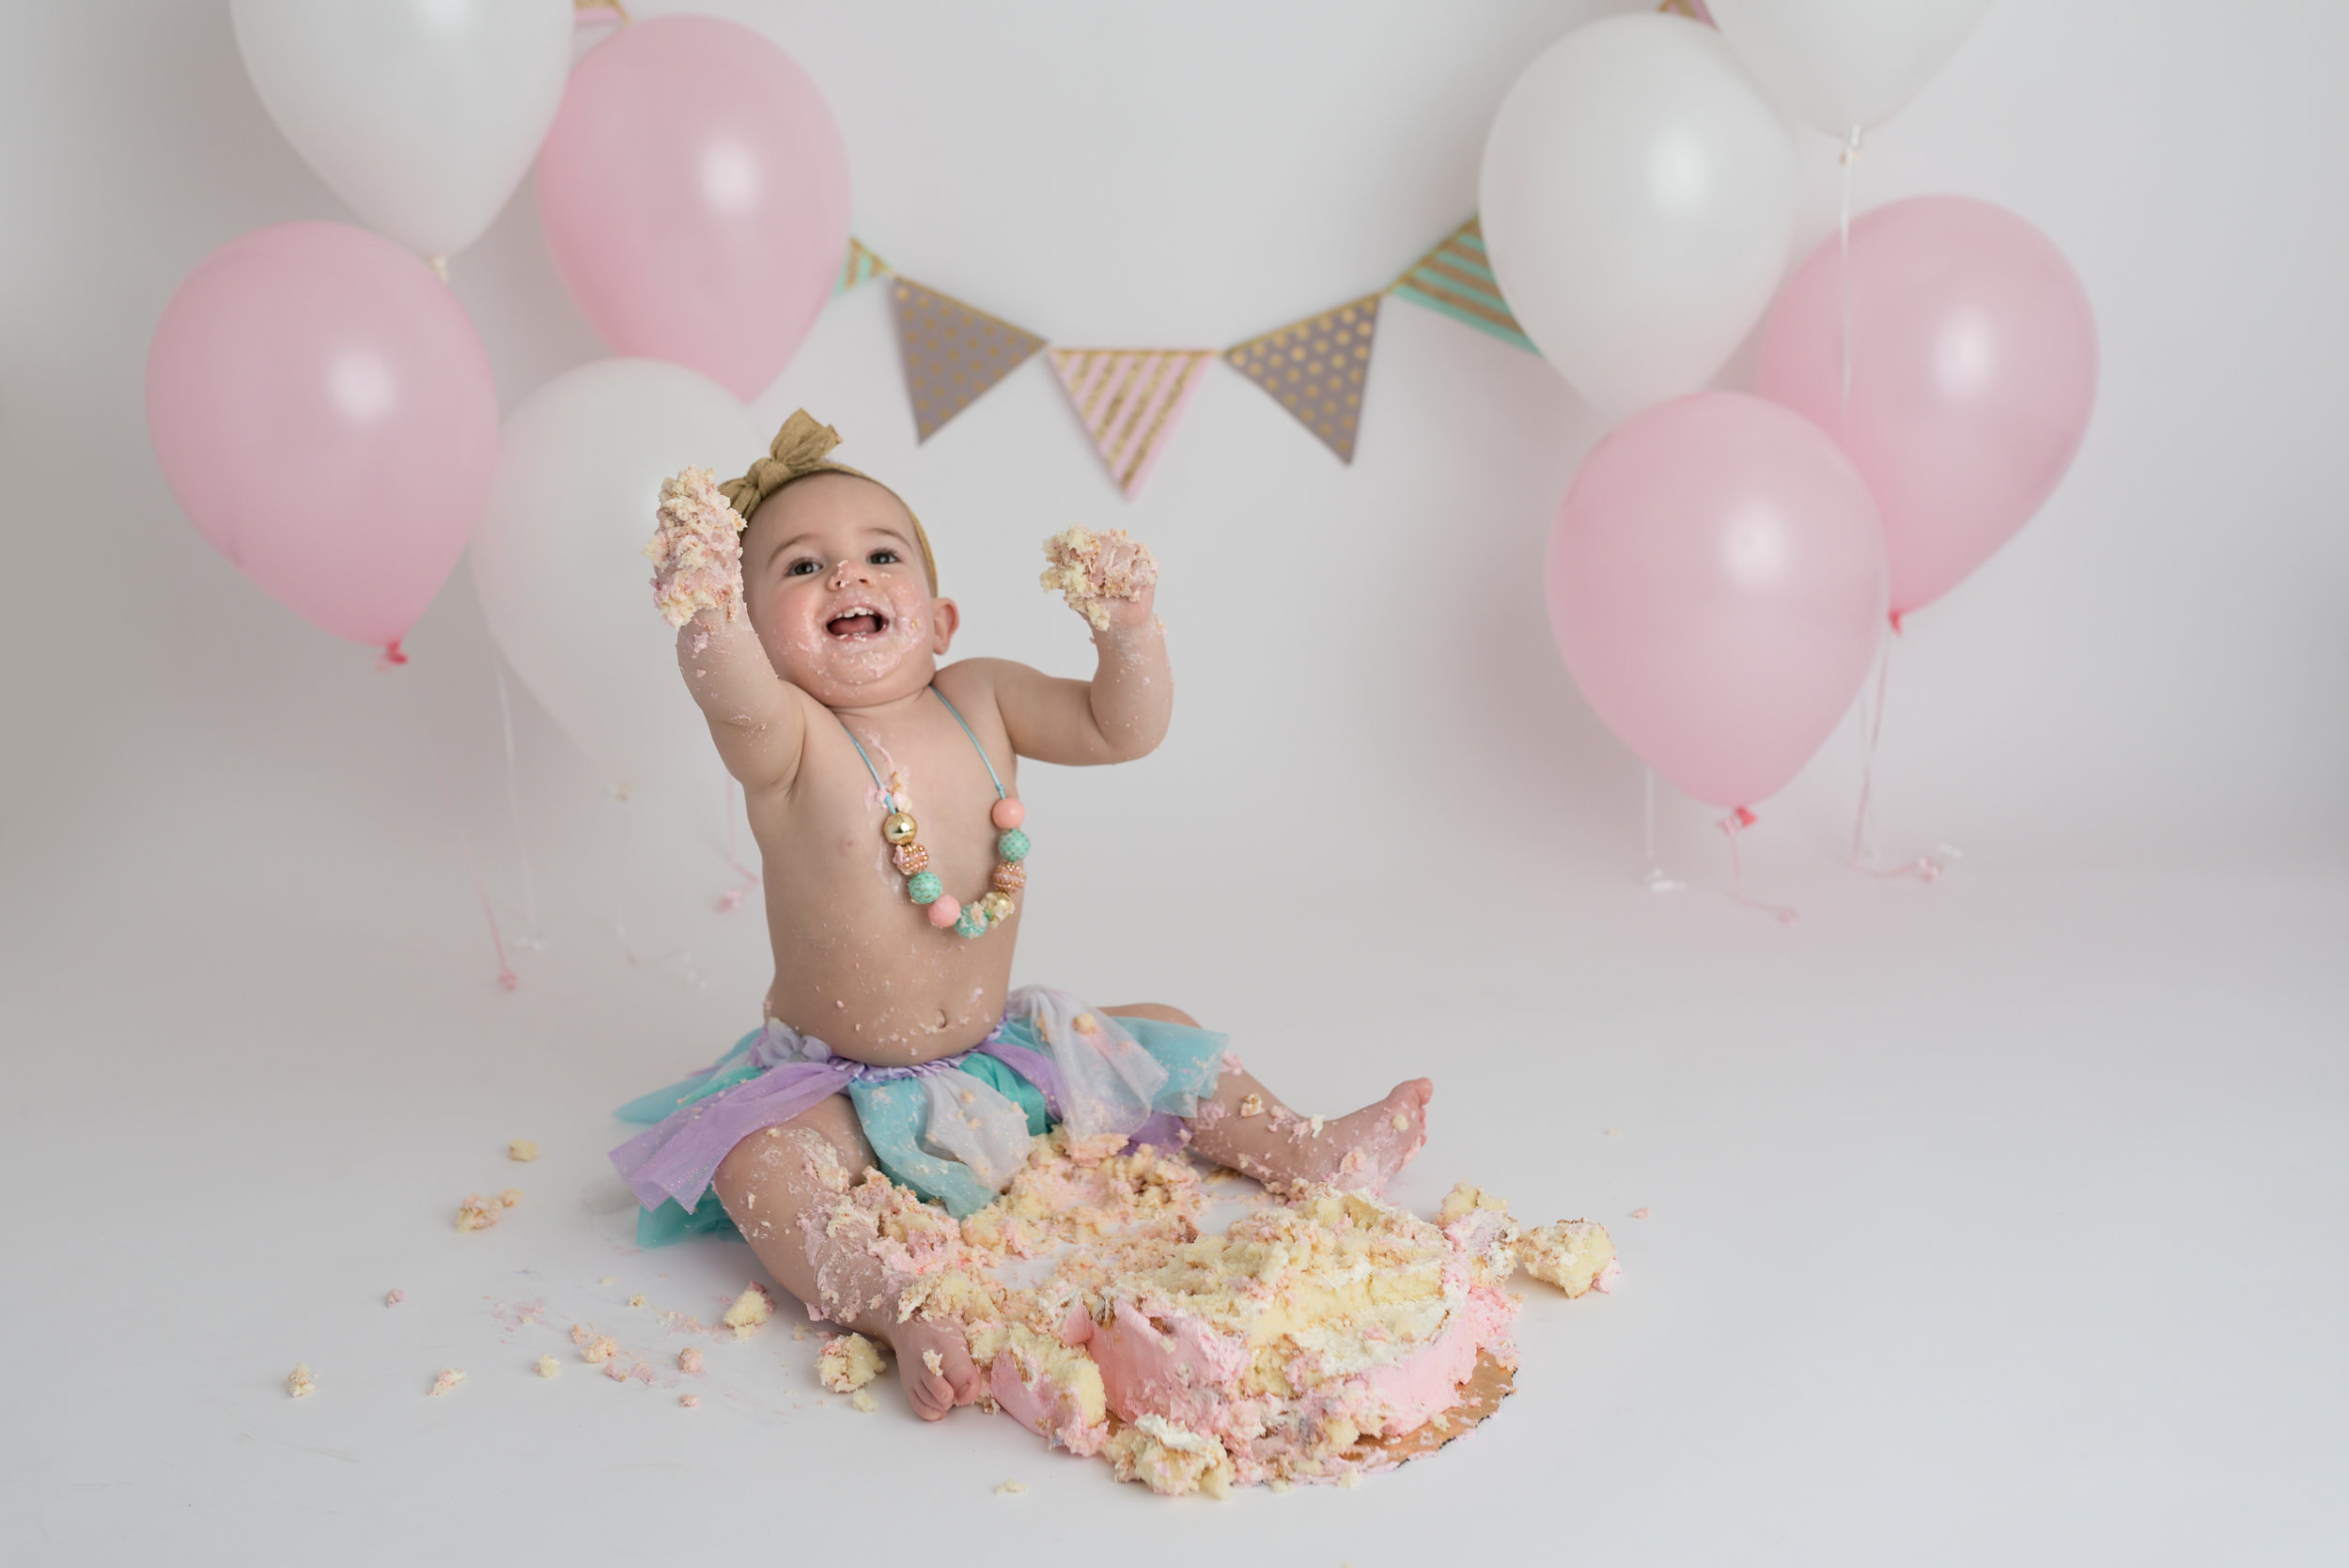 Charleston-Cake-Smash-Photographer-FSP_1172 copy.jpg